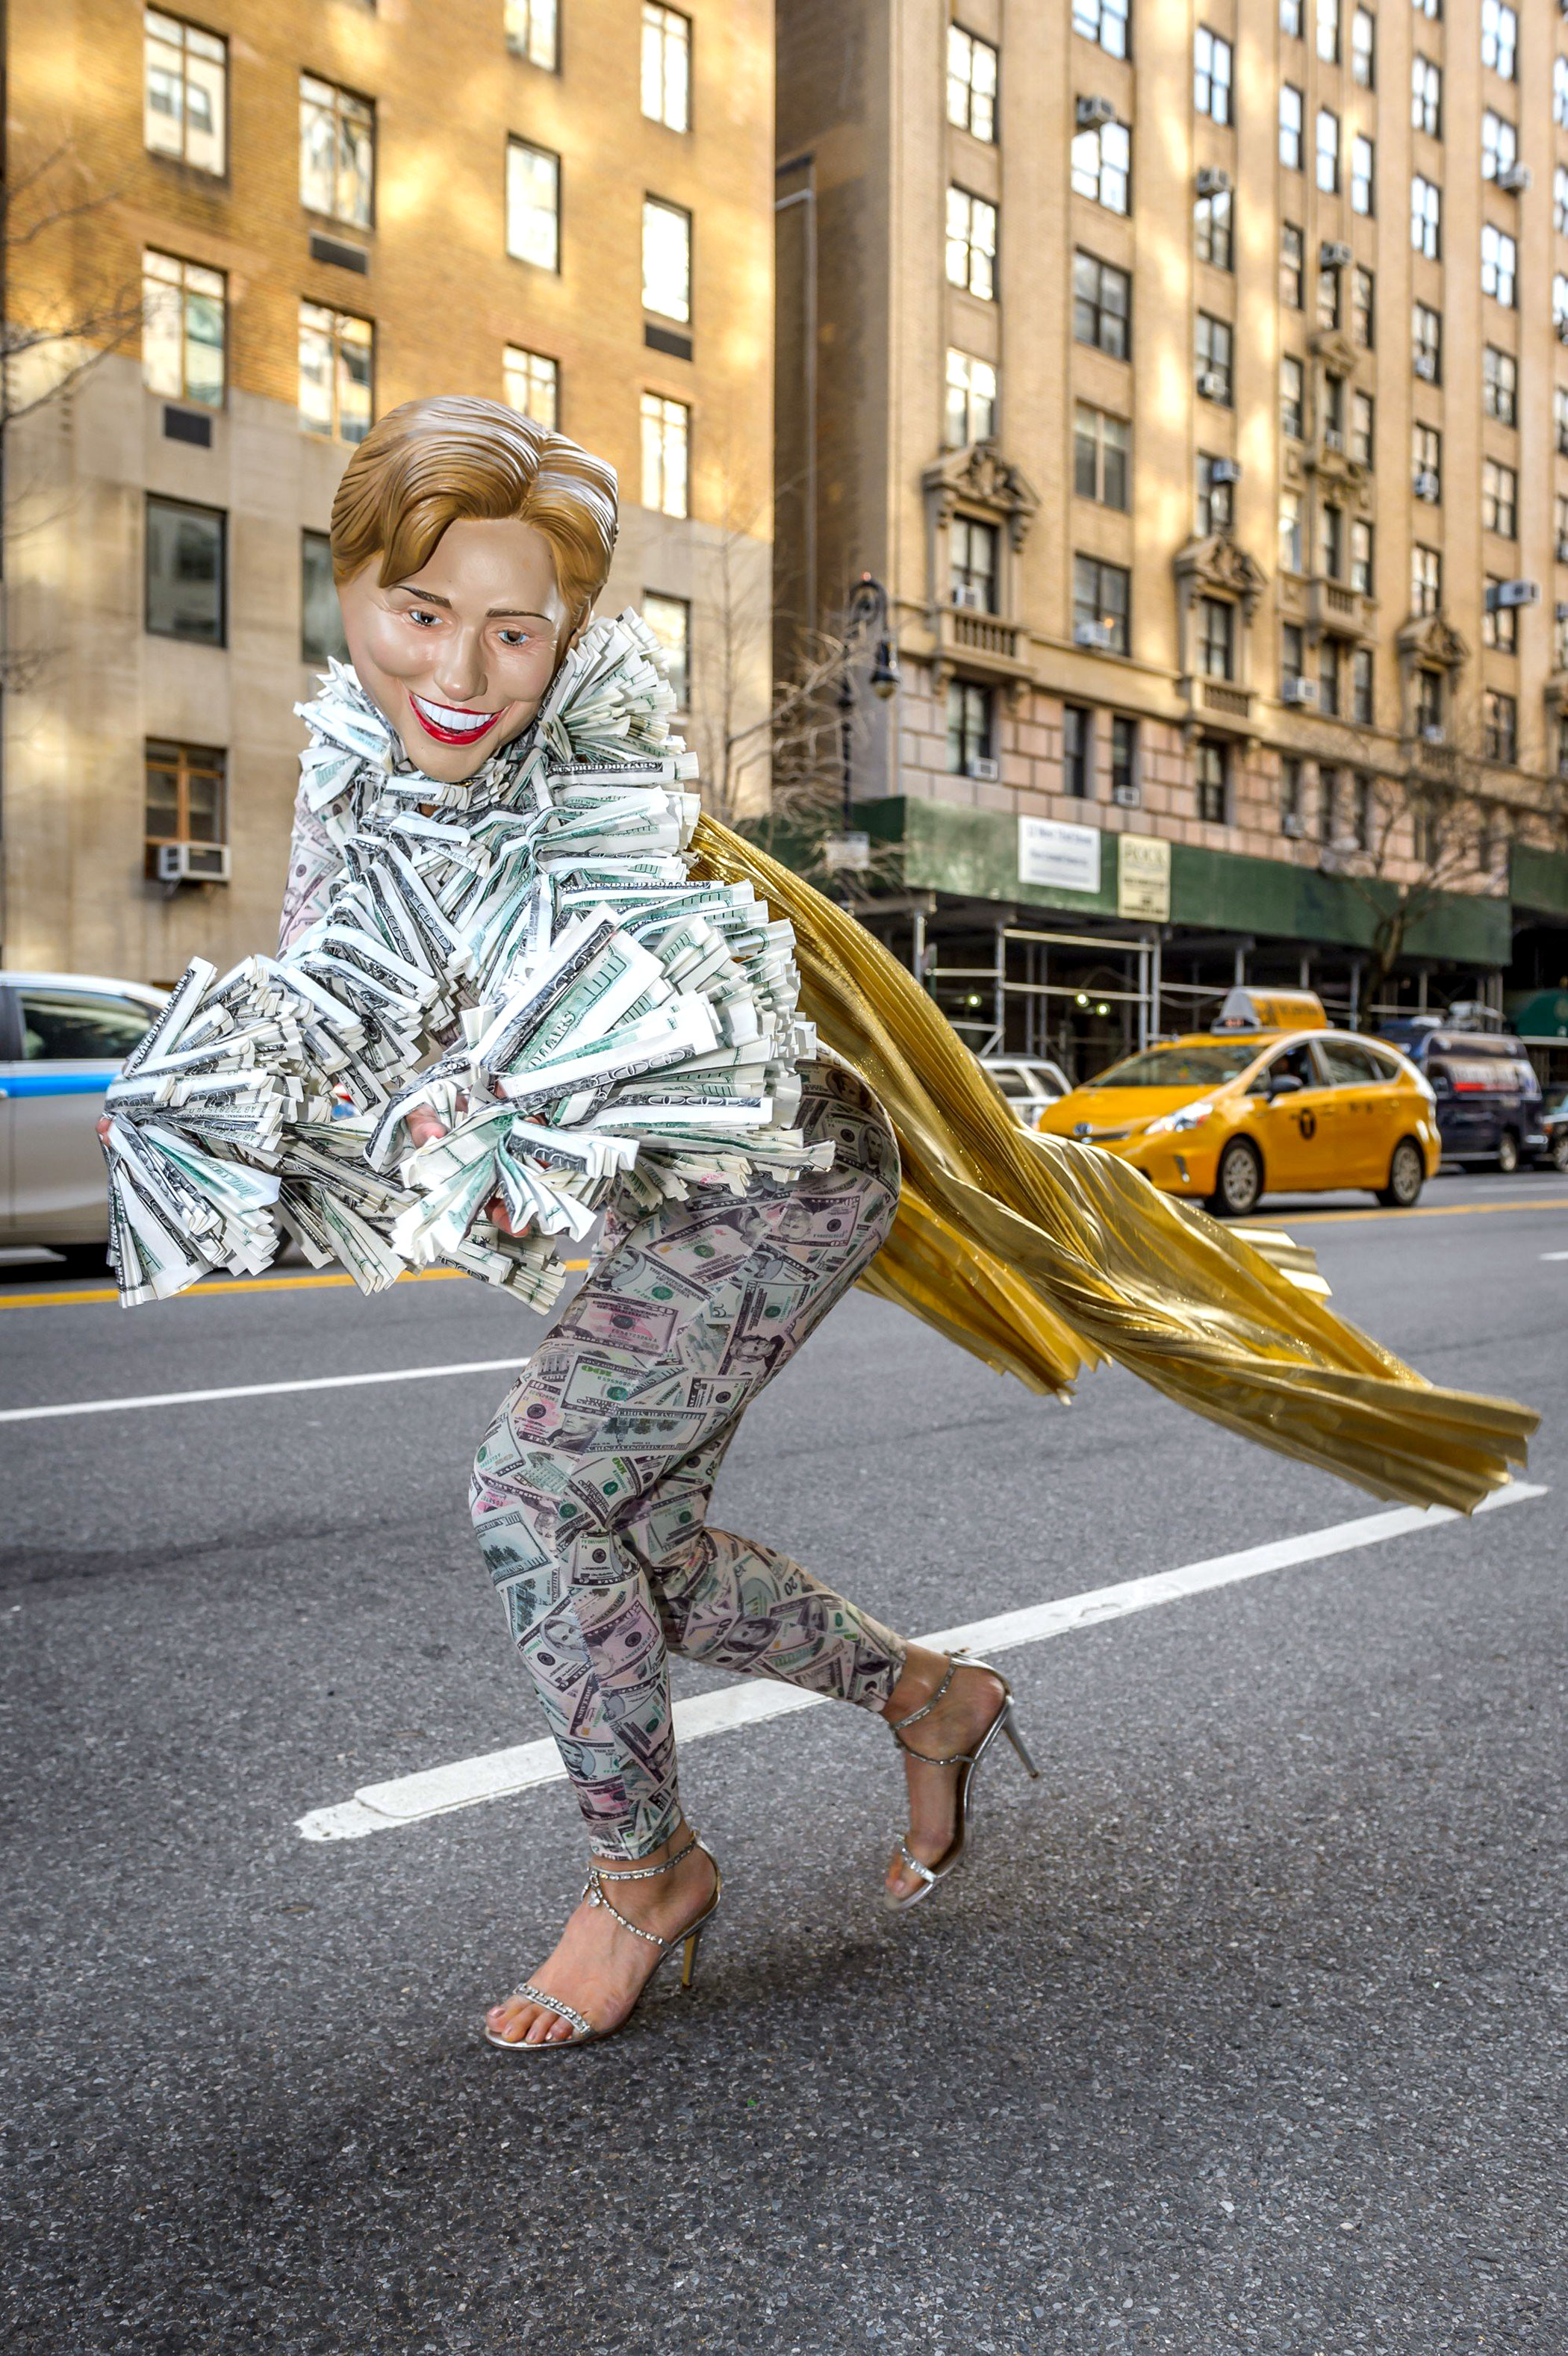 An activist dresses in the likeness of Hillary Clinton to protest the price of a fundraising dinner on March 30, 2016 in New York.